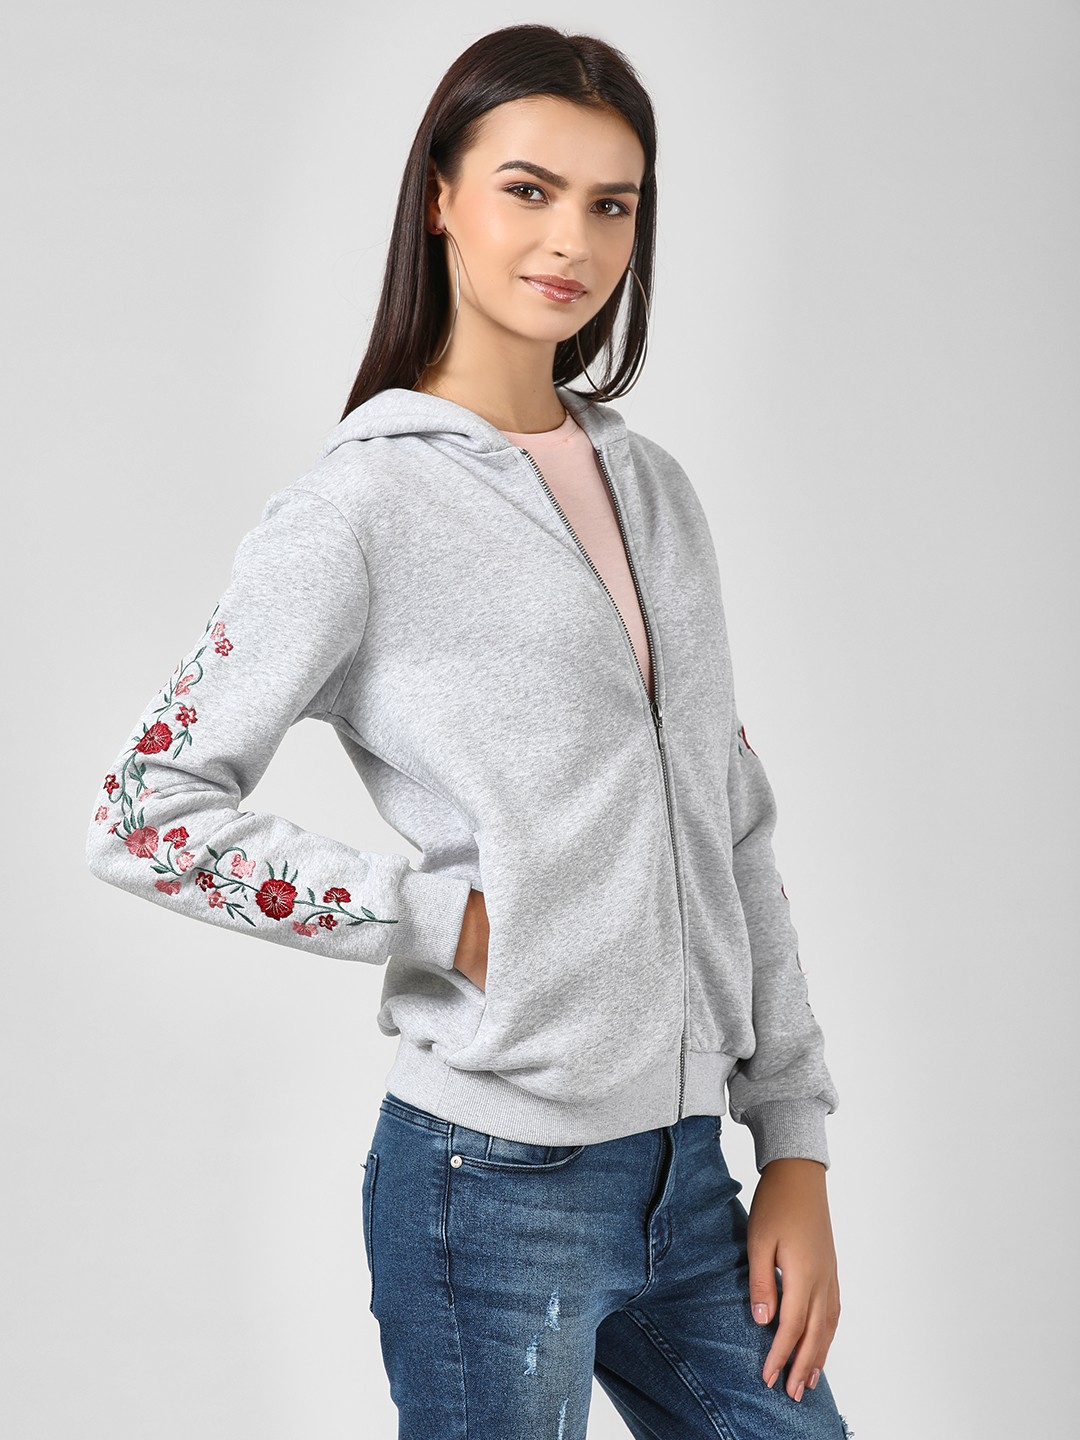 Femella Grey Floral Embroidered Sleeve Jacket 1